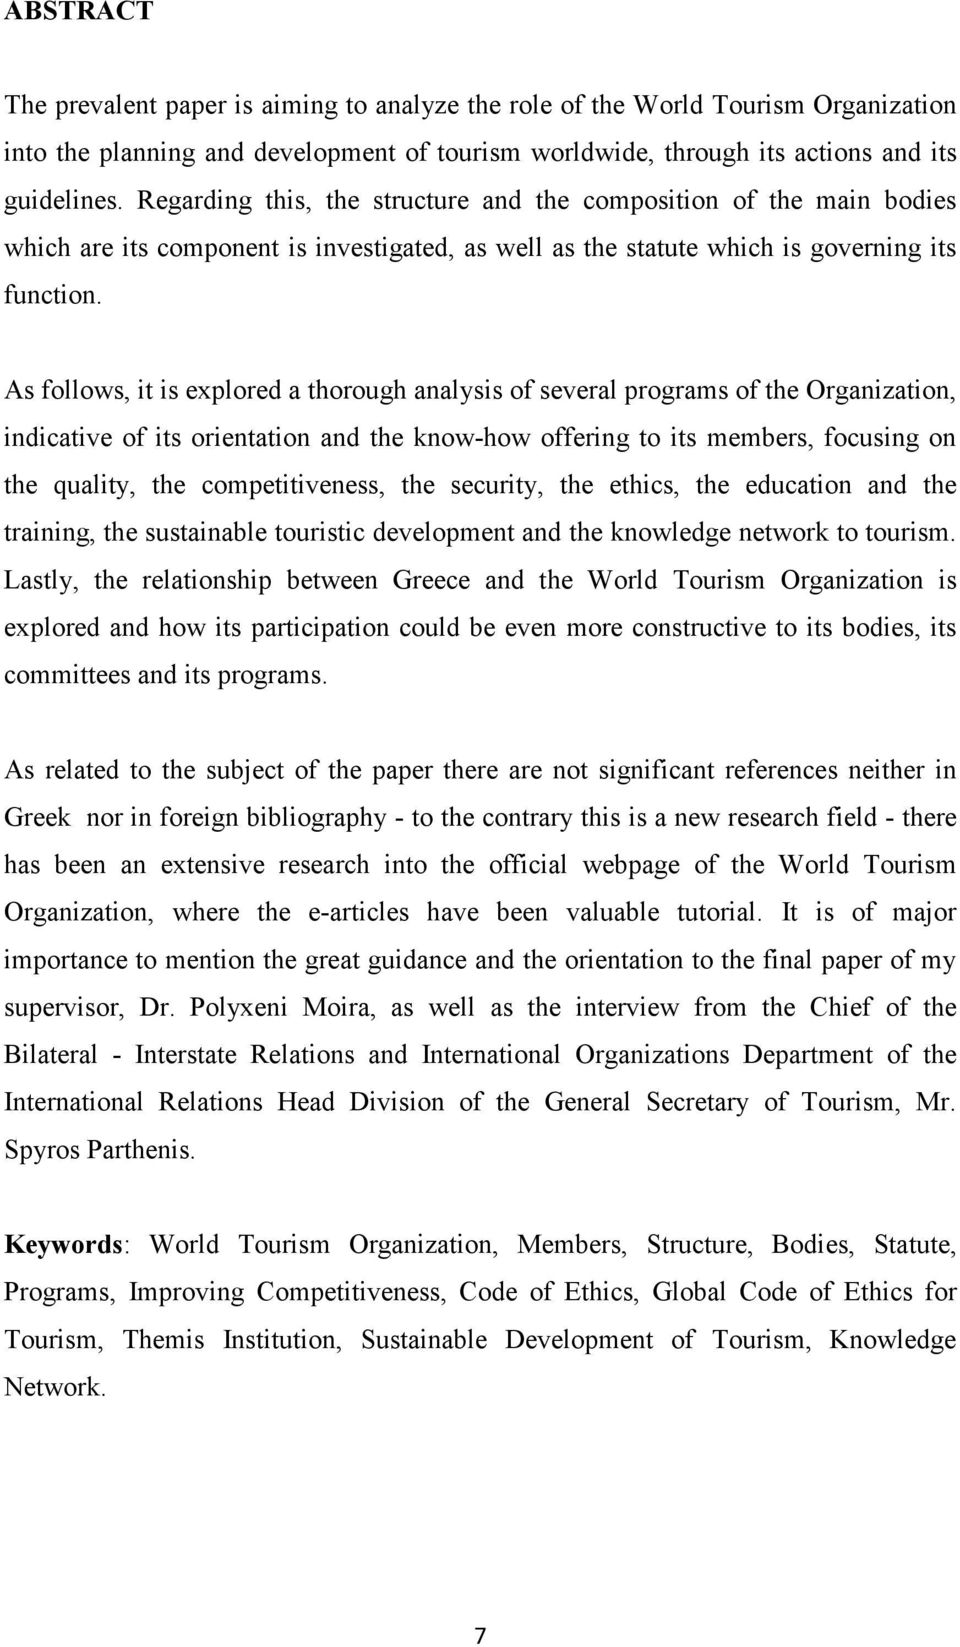 As follows, it is explored a thorough analysis of several programs of the Organization, indicative of its orientation and the know-how offering to its members, focusing on the quality, the